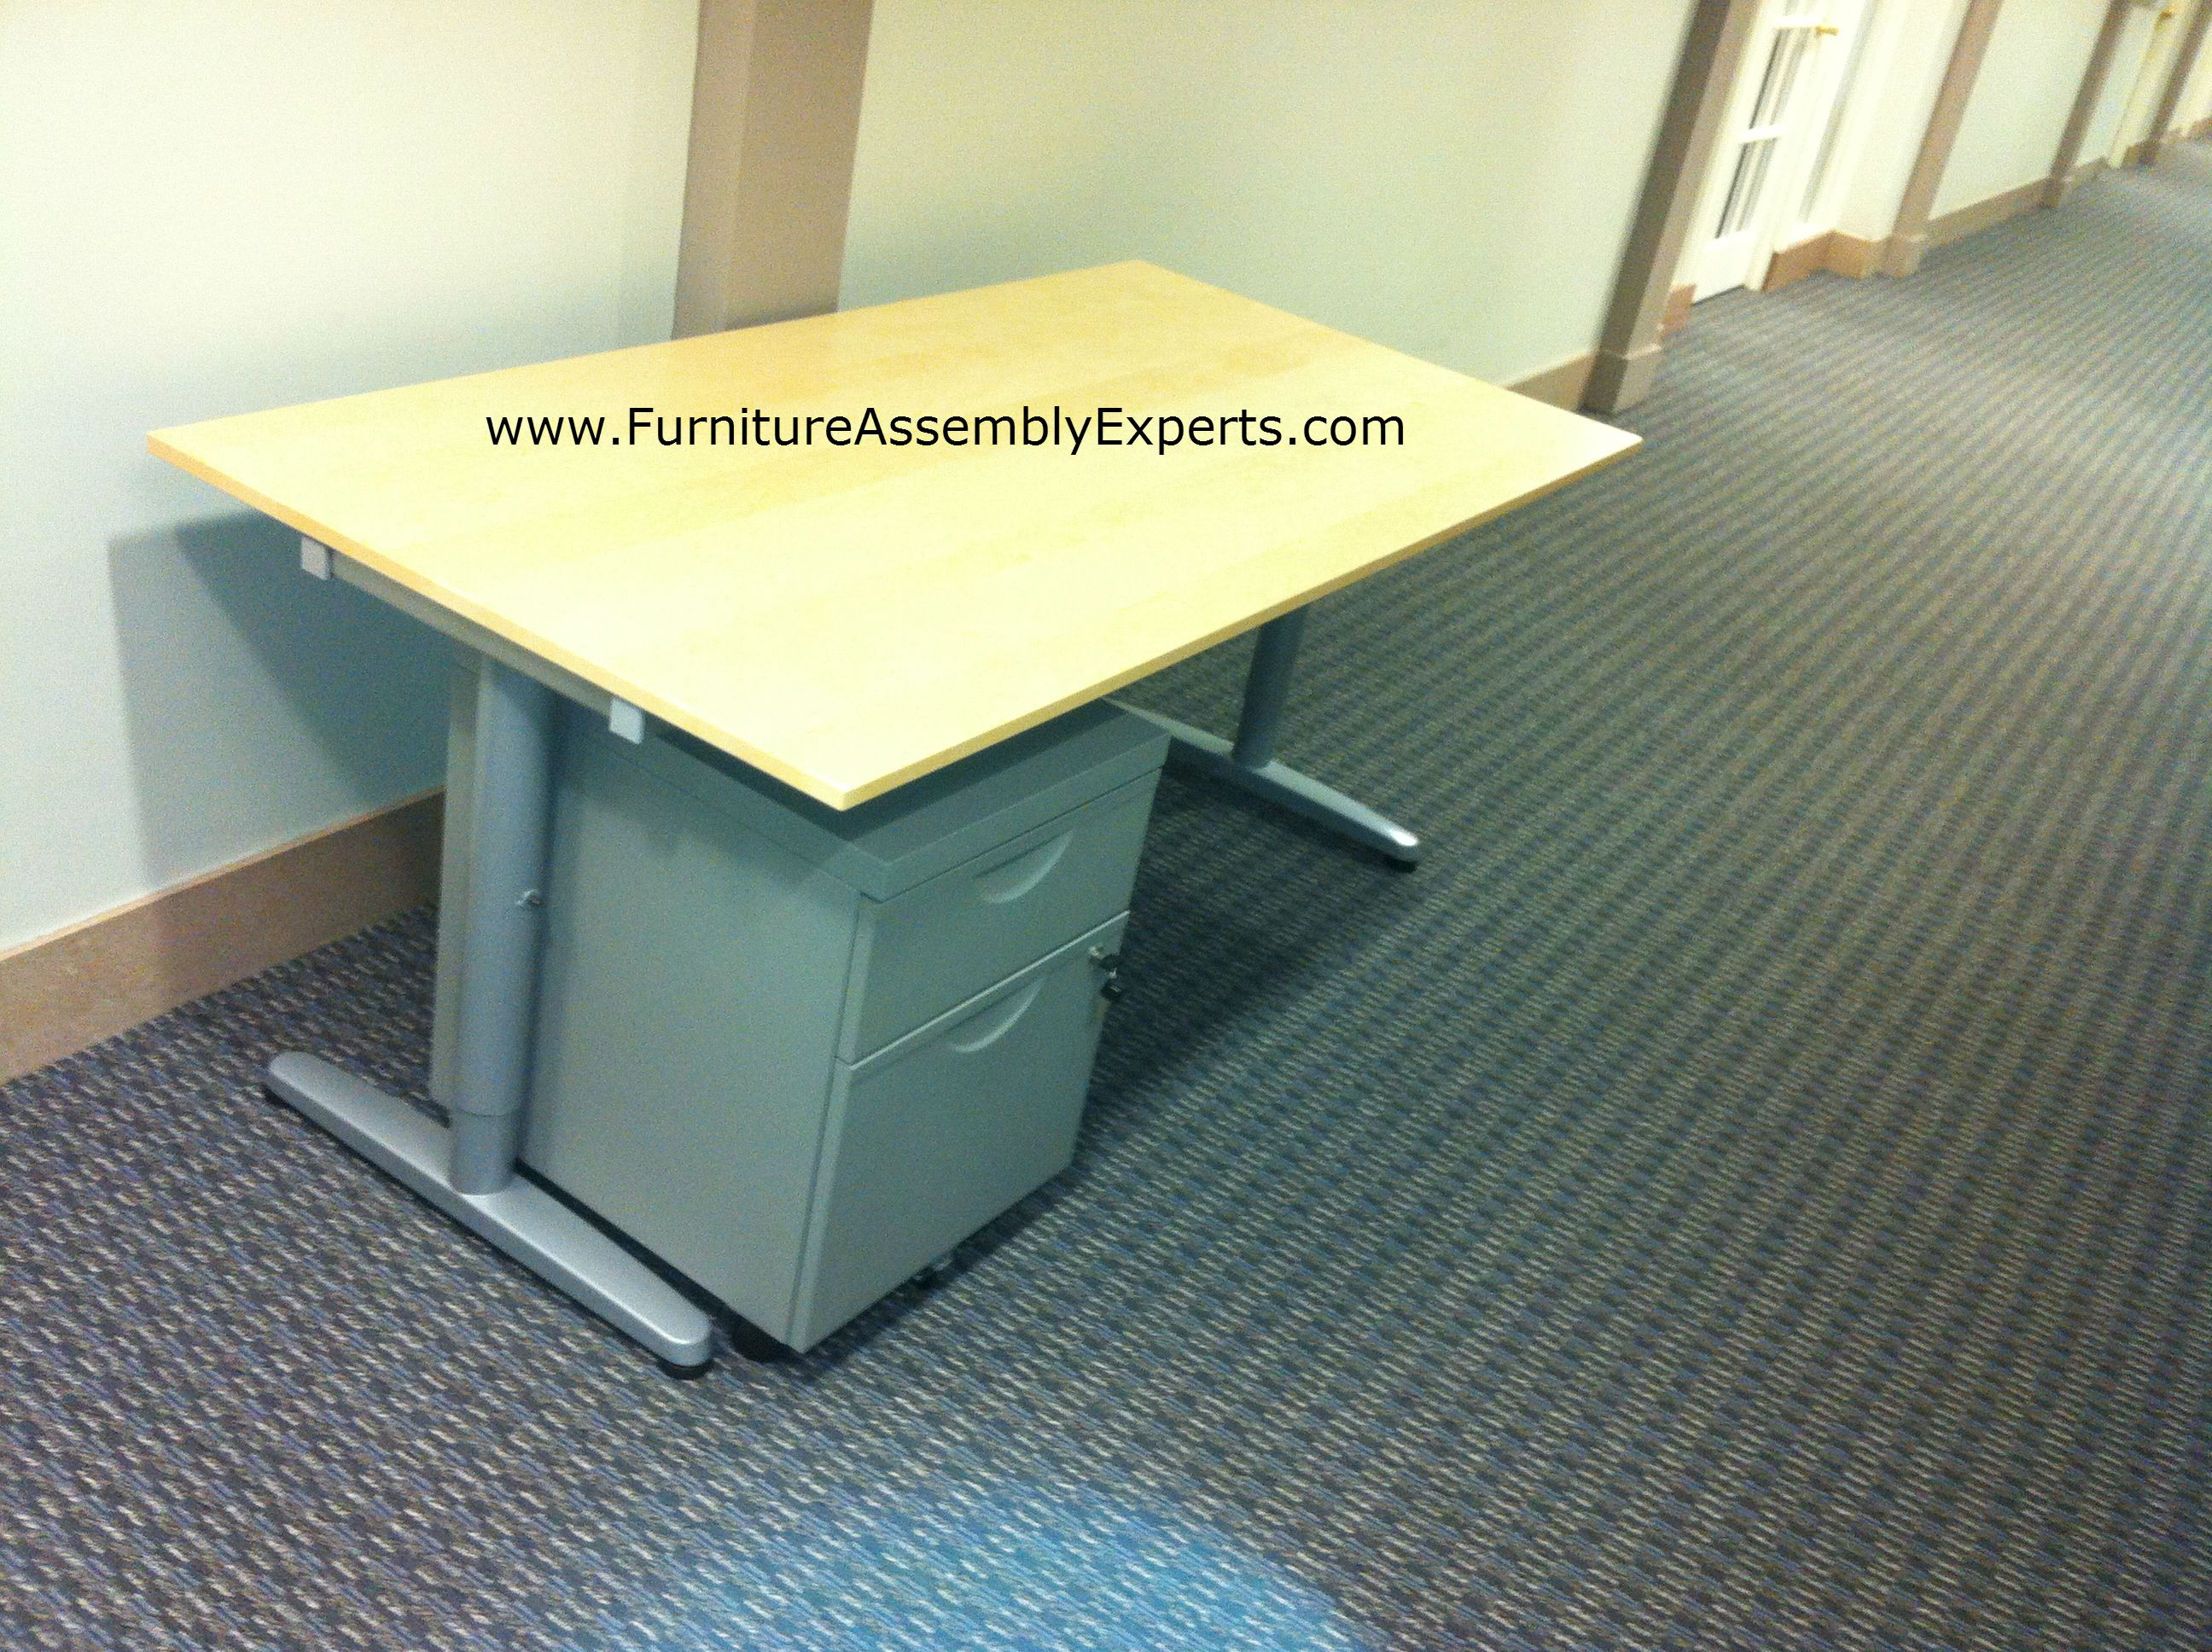 ikea galant desk and file cabinet assembled in lorton va by